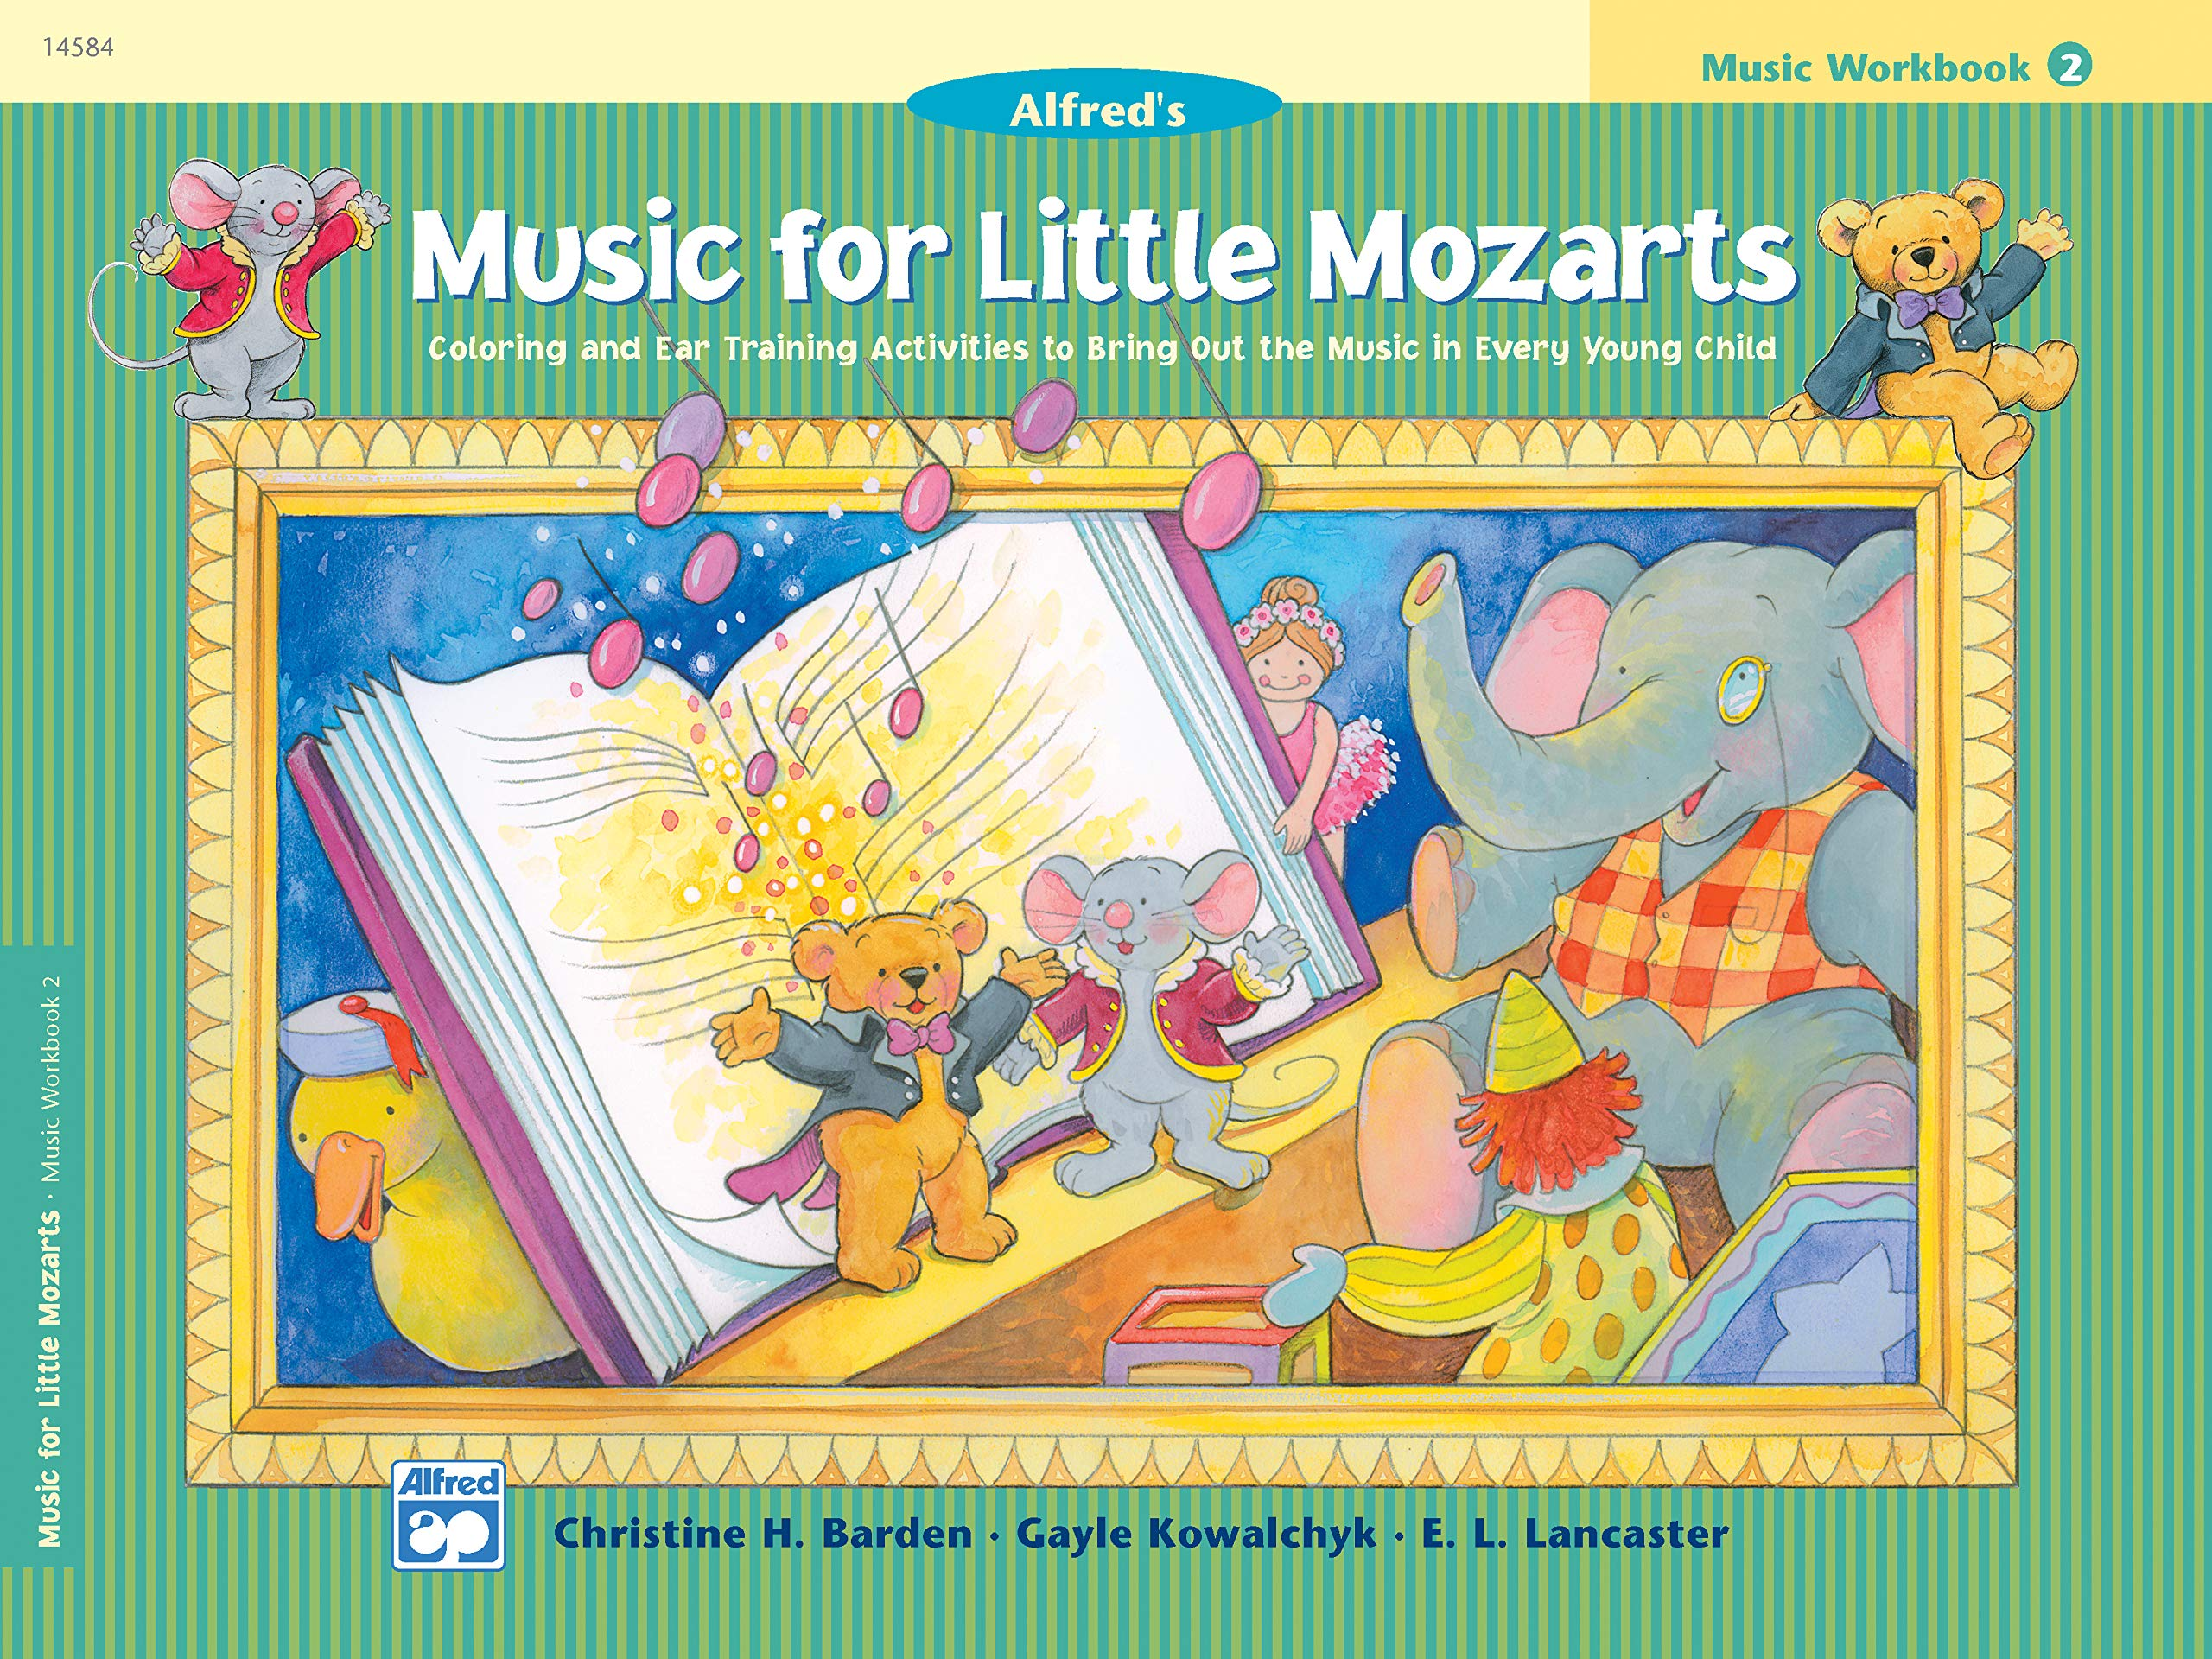 Music for Little Mozarts: Music Workbook 2: Coloring and Ear Training  Activities to Bring Out the Music in Every Young Child: Amazon.de: Barden,  Christine H., Kowalchyk, Gayle, Lancaster, E. L.: Fremdsprachige Bücher